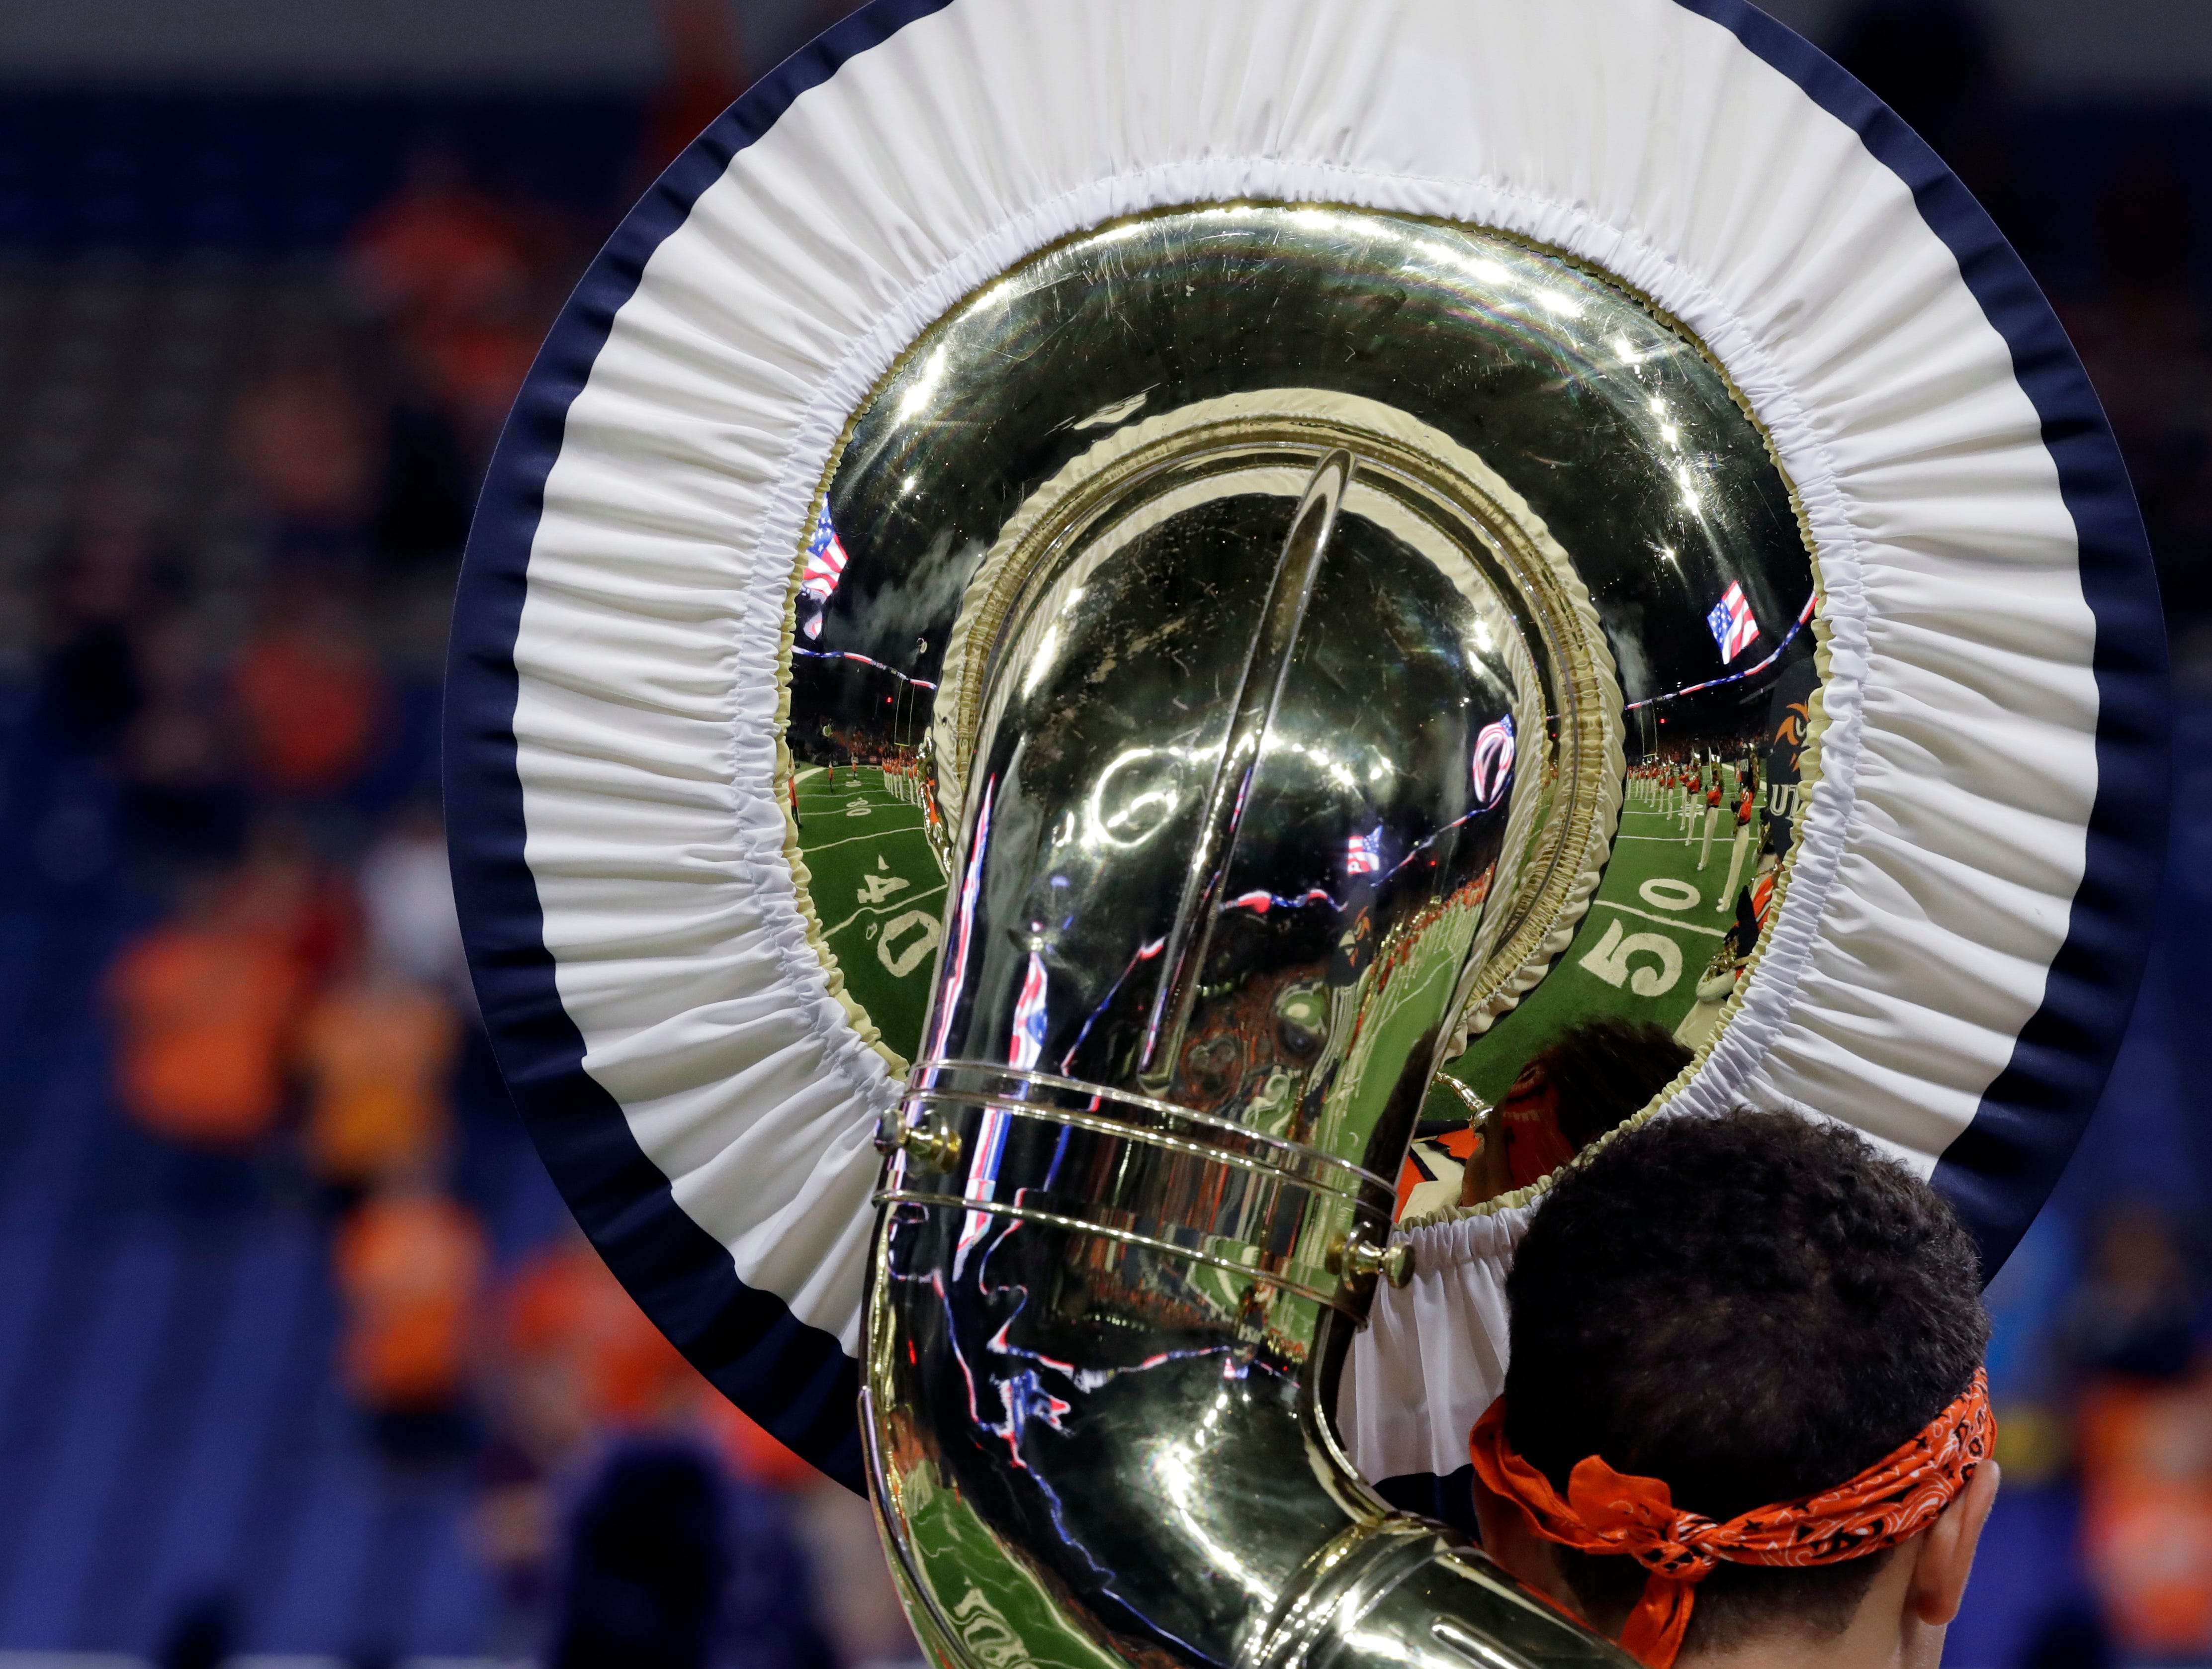 Members of the UTSA band are reflected in a tuba before an NCAA college football game between UTSA and the UTEP, Saturday, Sept. 29, 2018, in San Antonio. (AP Photo/Eric Gay)